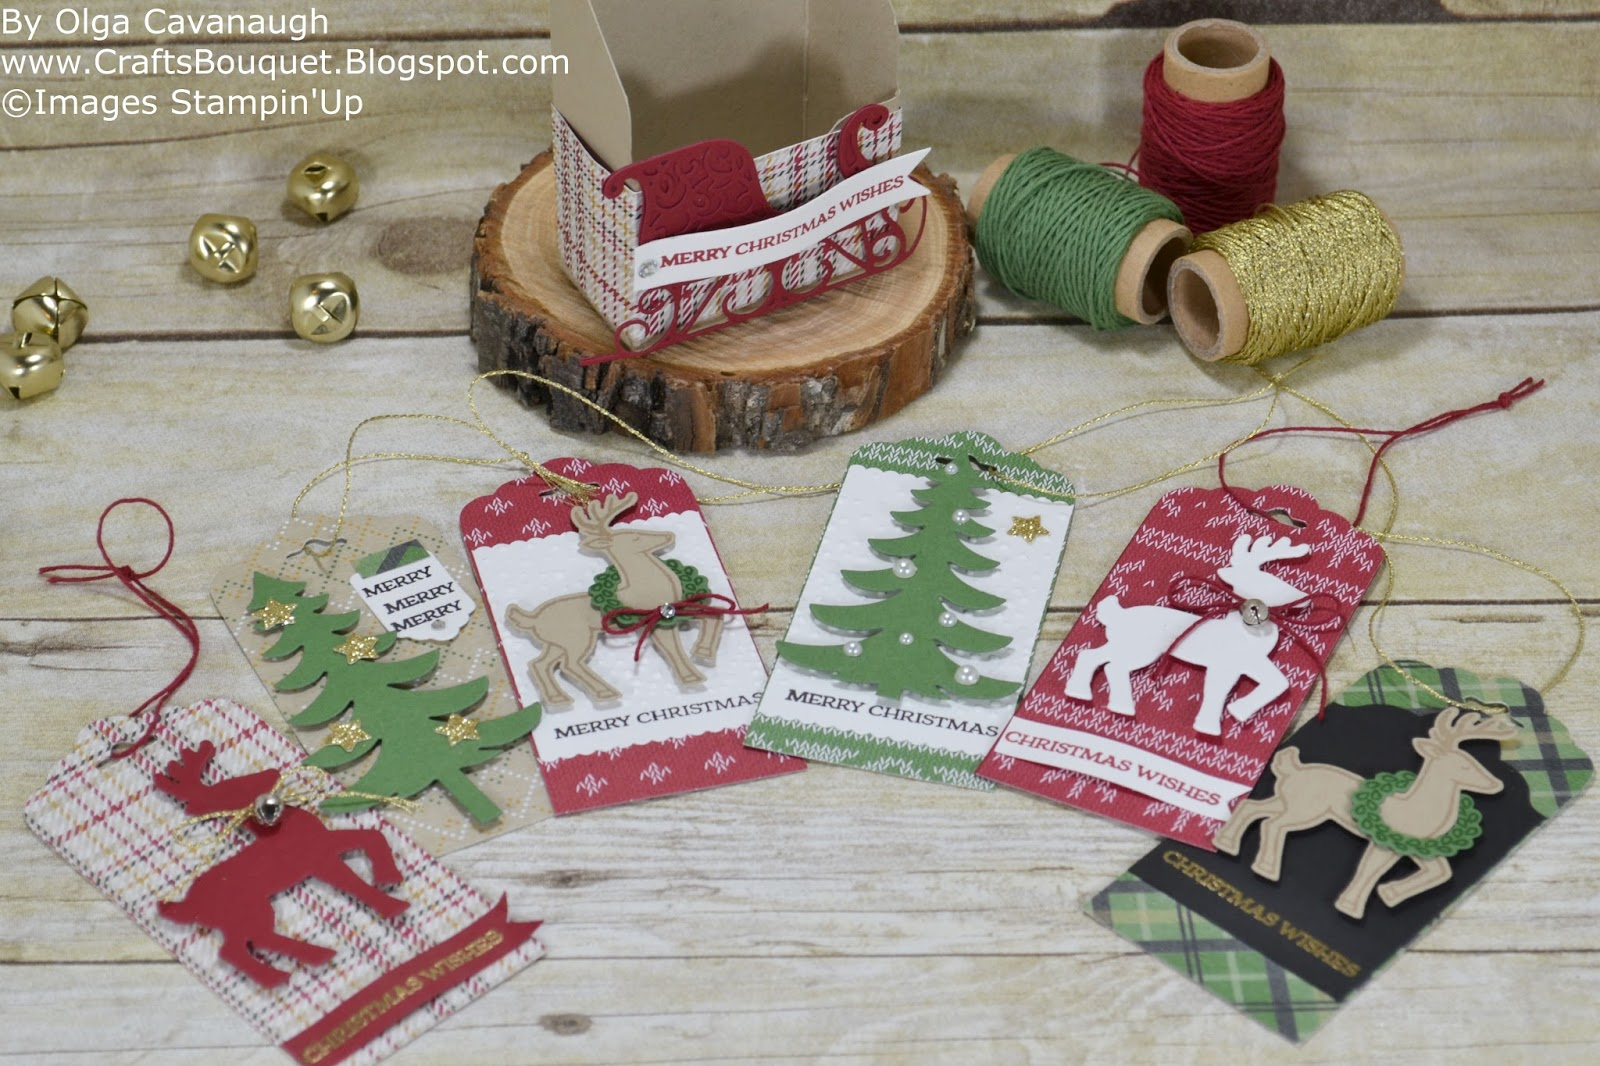 Crafts Bouquet Stampin'up Santa's Sleigh  Handmade For